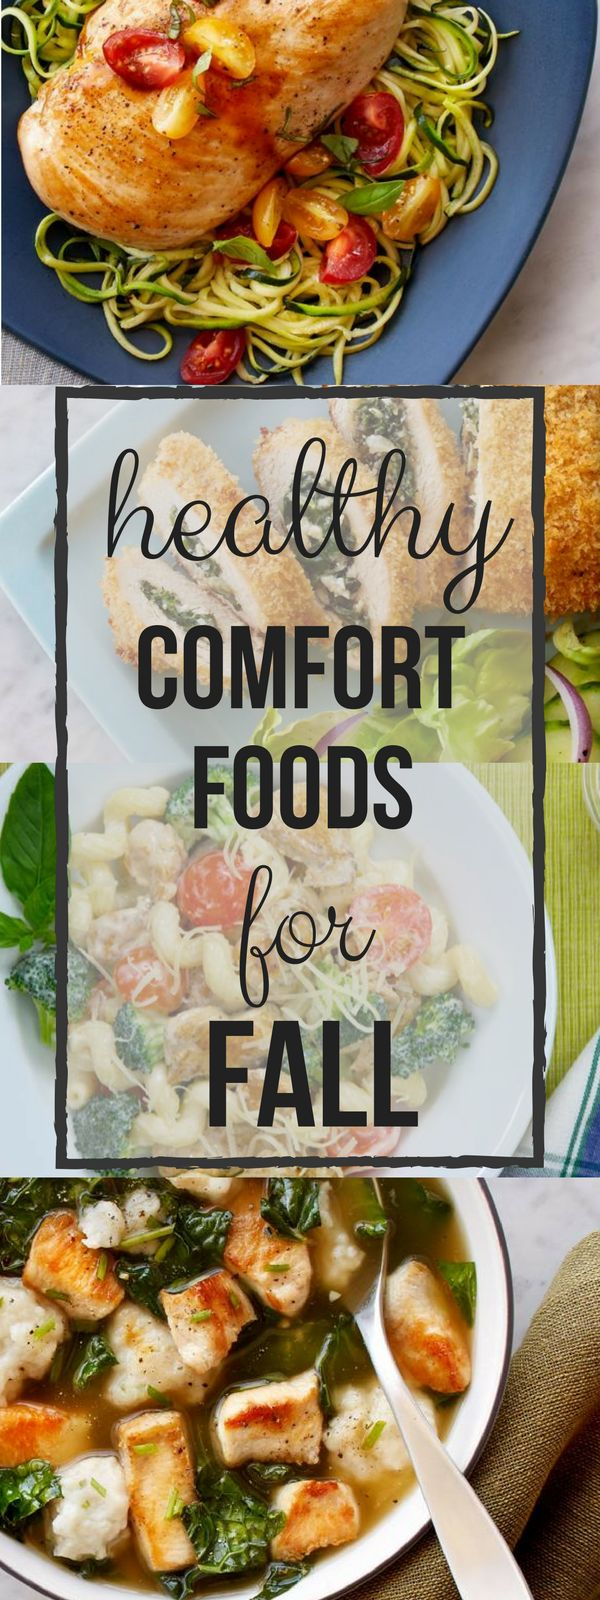 Comfort foods don't have to be heavy! We're redefining comfort foods with Foster Farms Simply Raised Chicken. These healthy, tasty, and nutritious meals will be on your table in a jiffy and energize your whole family. The NEW Comfort Food is perfect for the fall! #ad